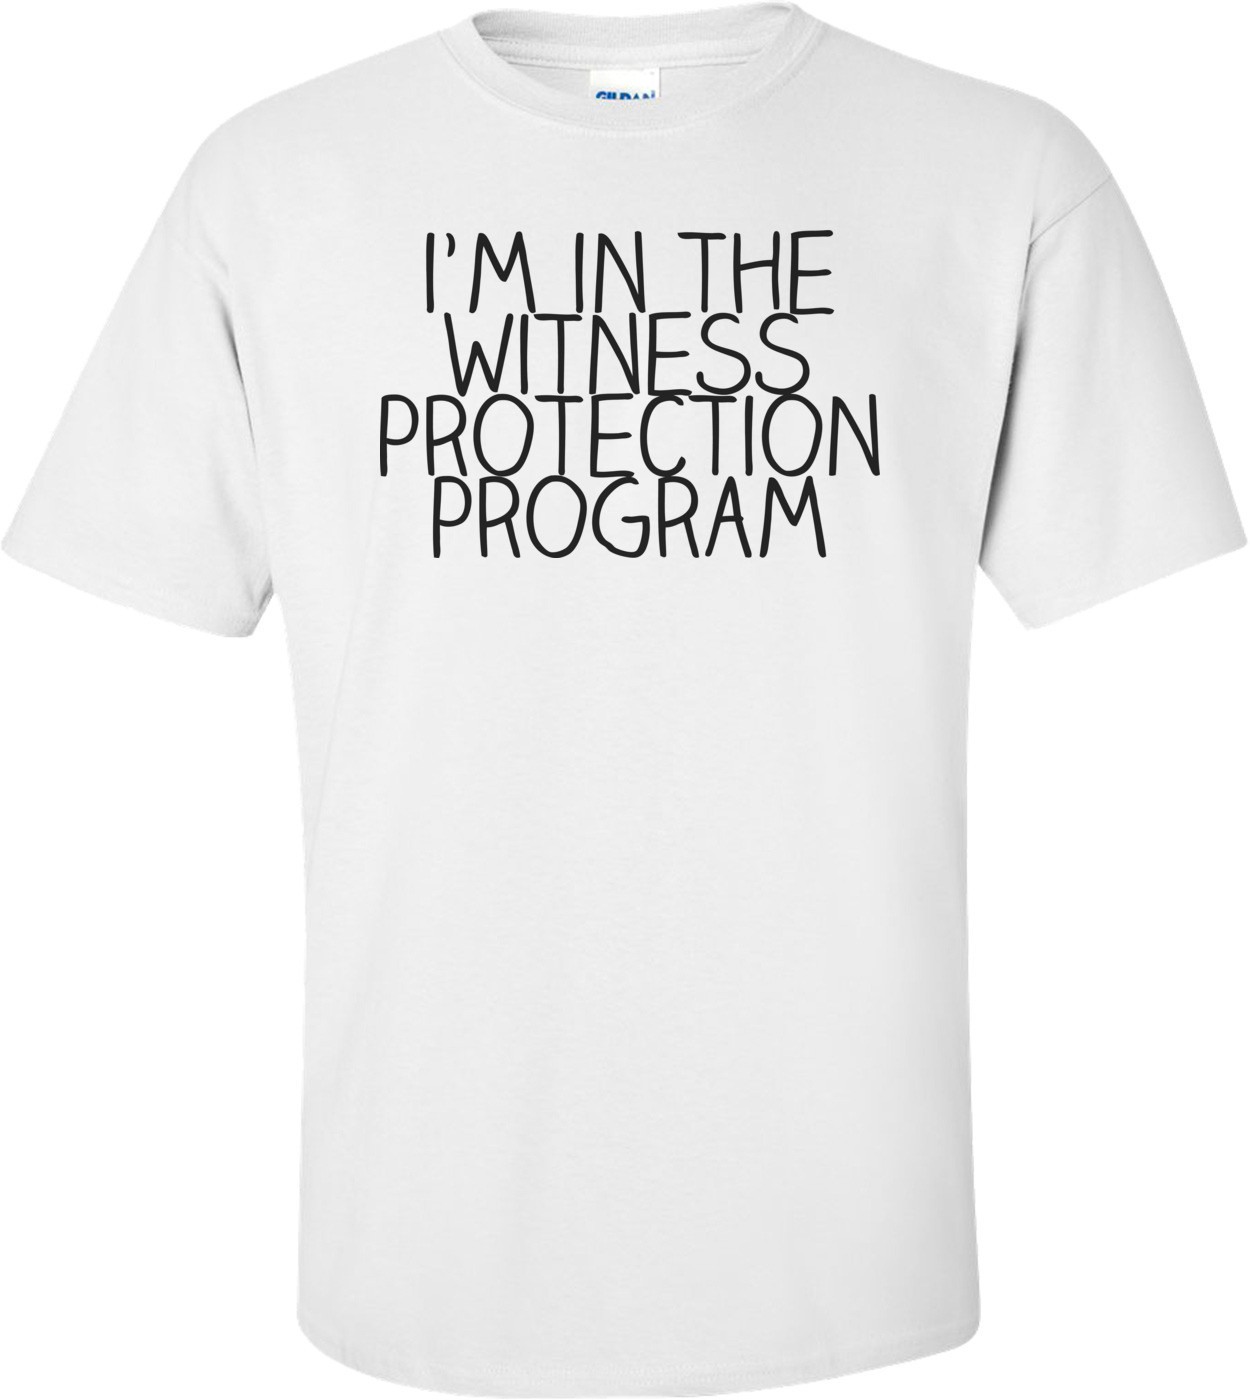 I'm In The Witness Protection Program T-shirt